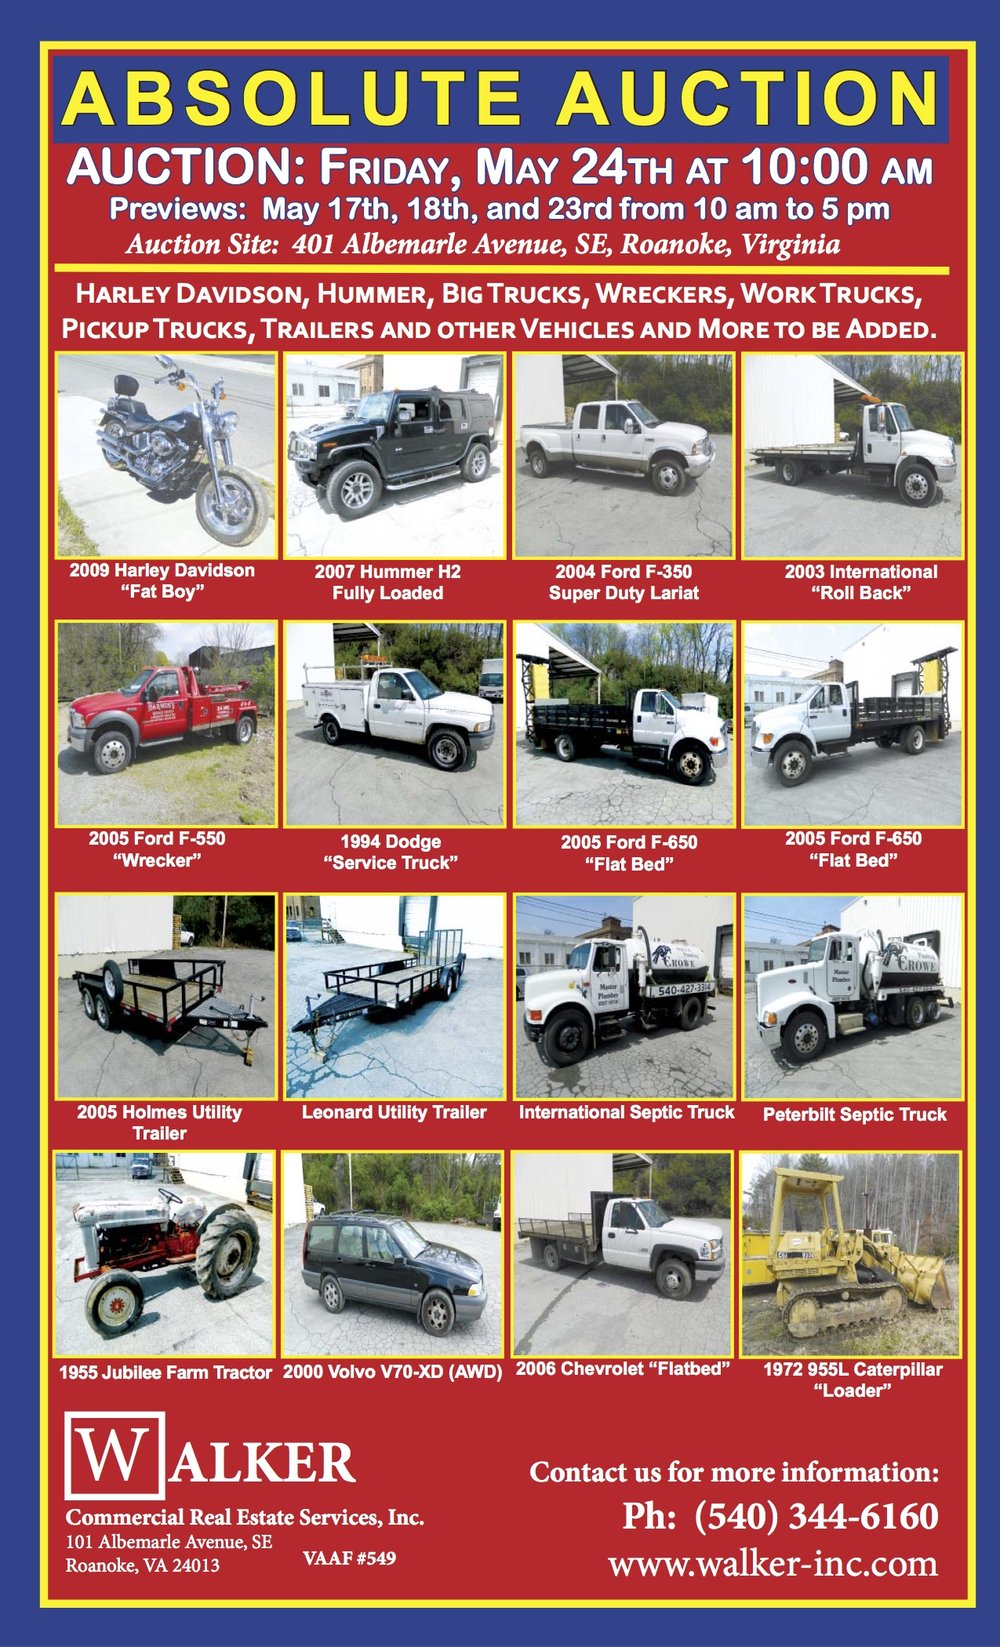 669_0_2013EquipmentBrochure.jpg